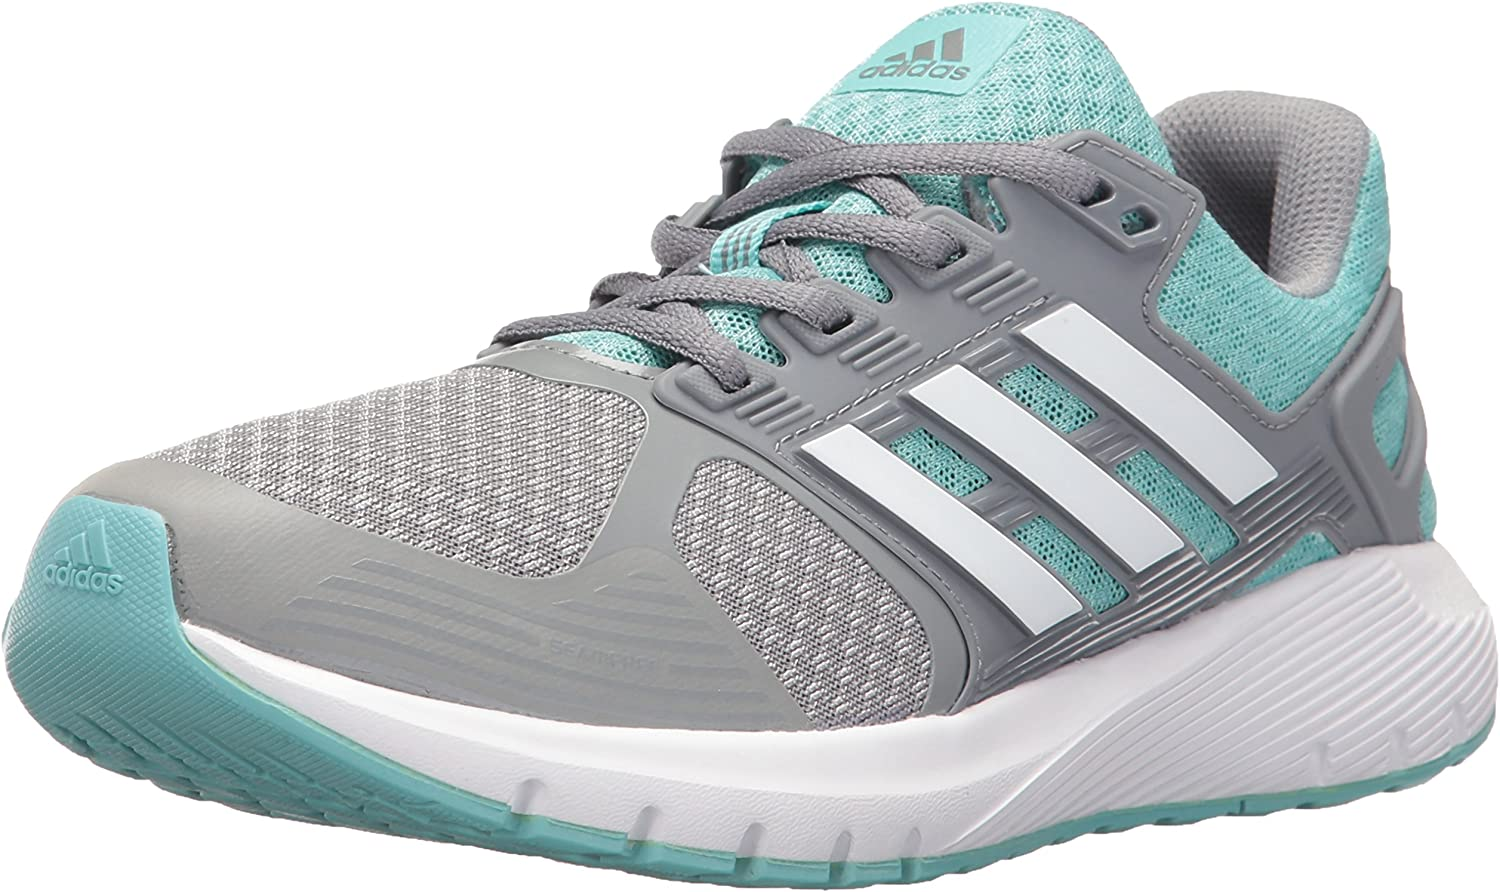 Adidas Women's Duramo 8 Running shoes